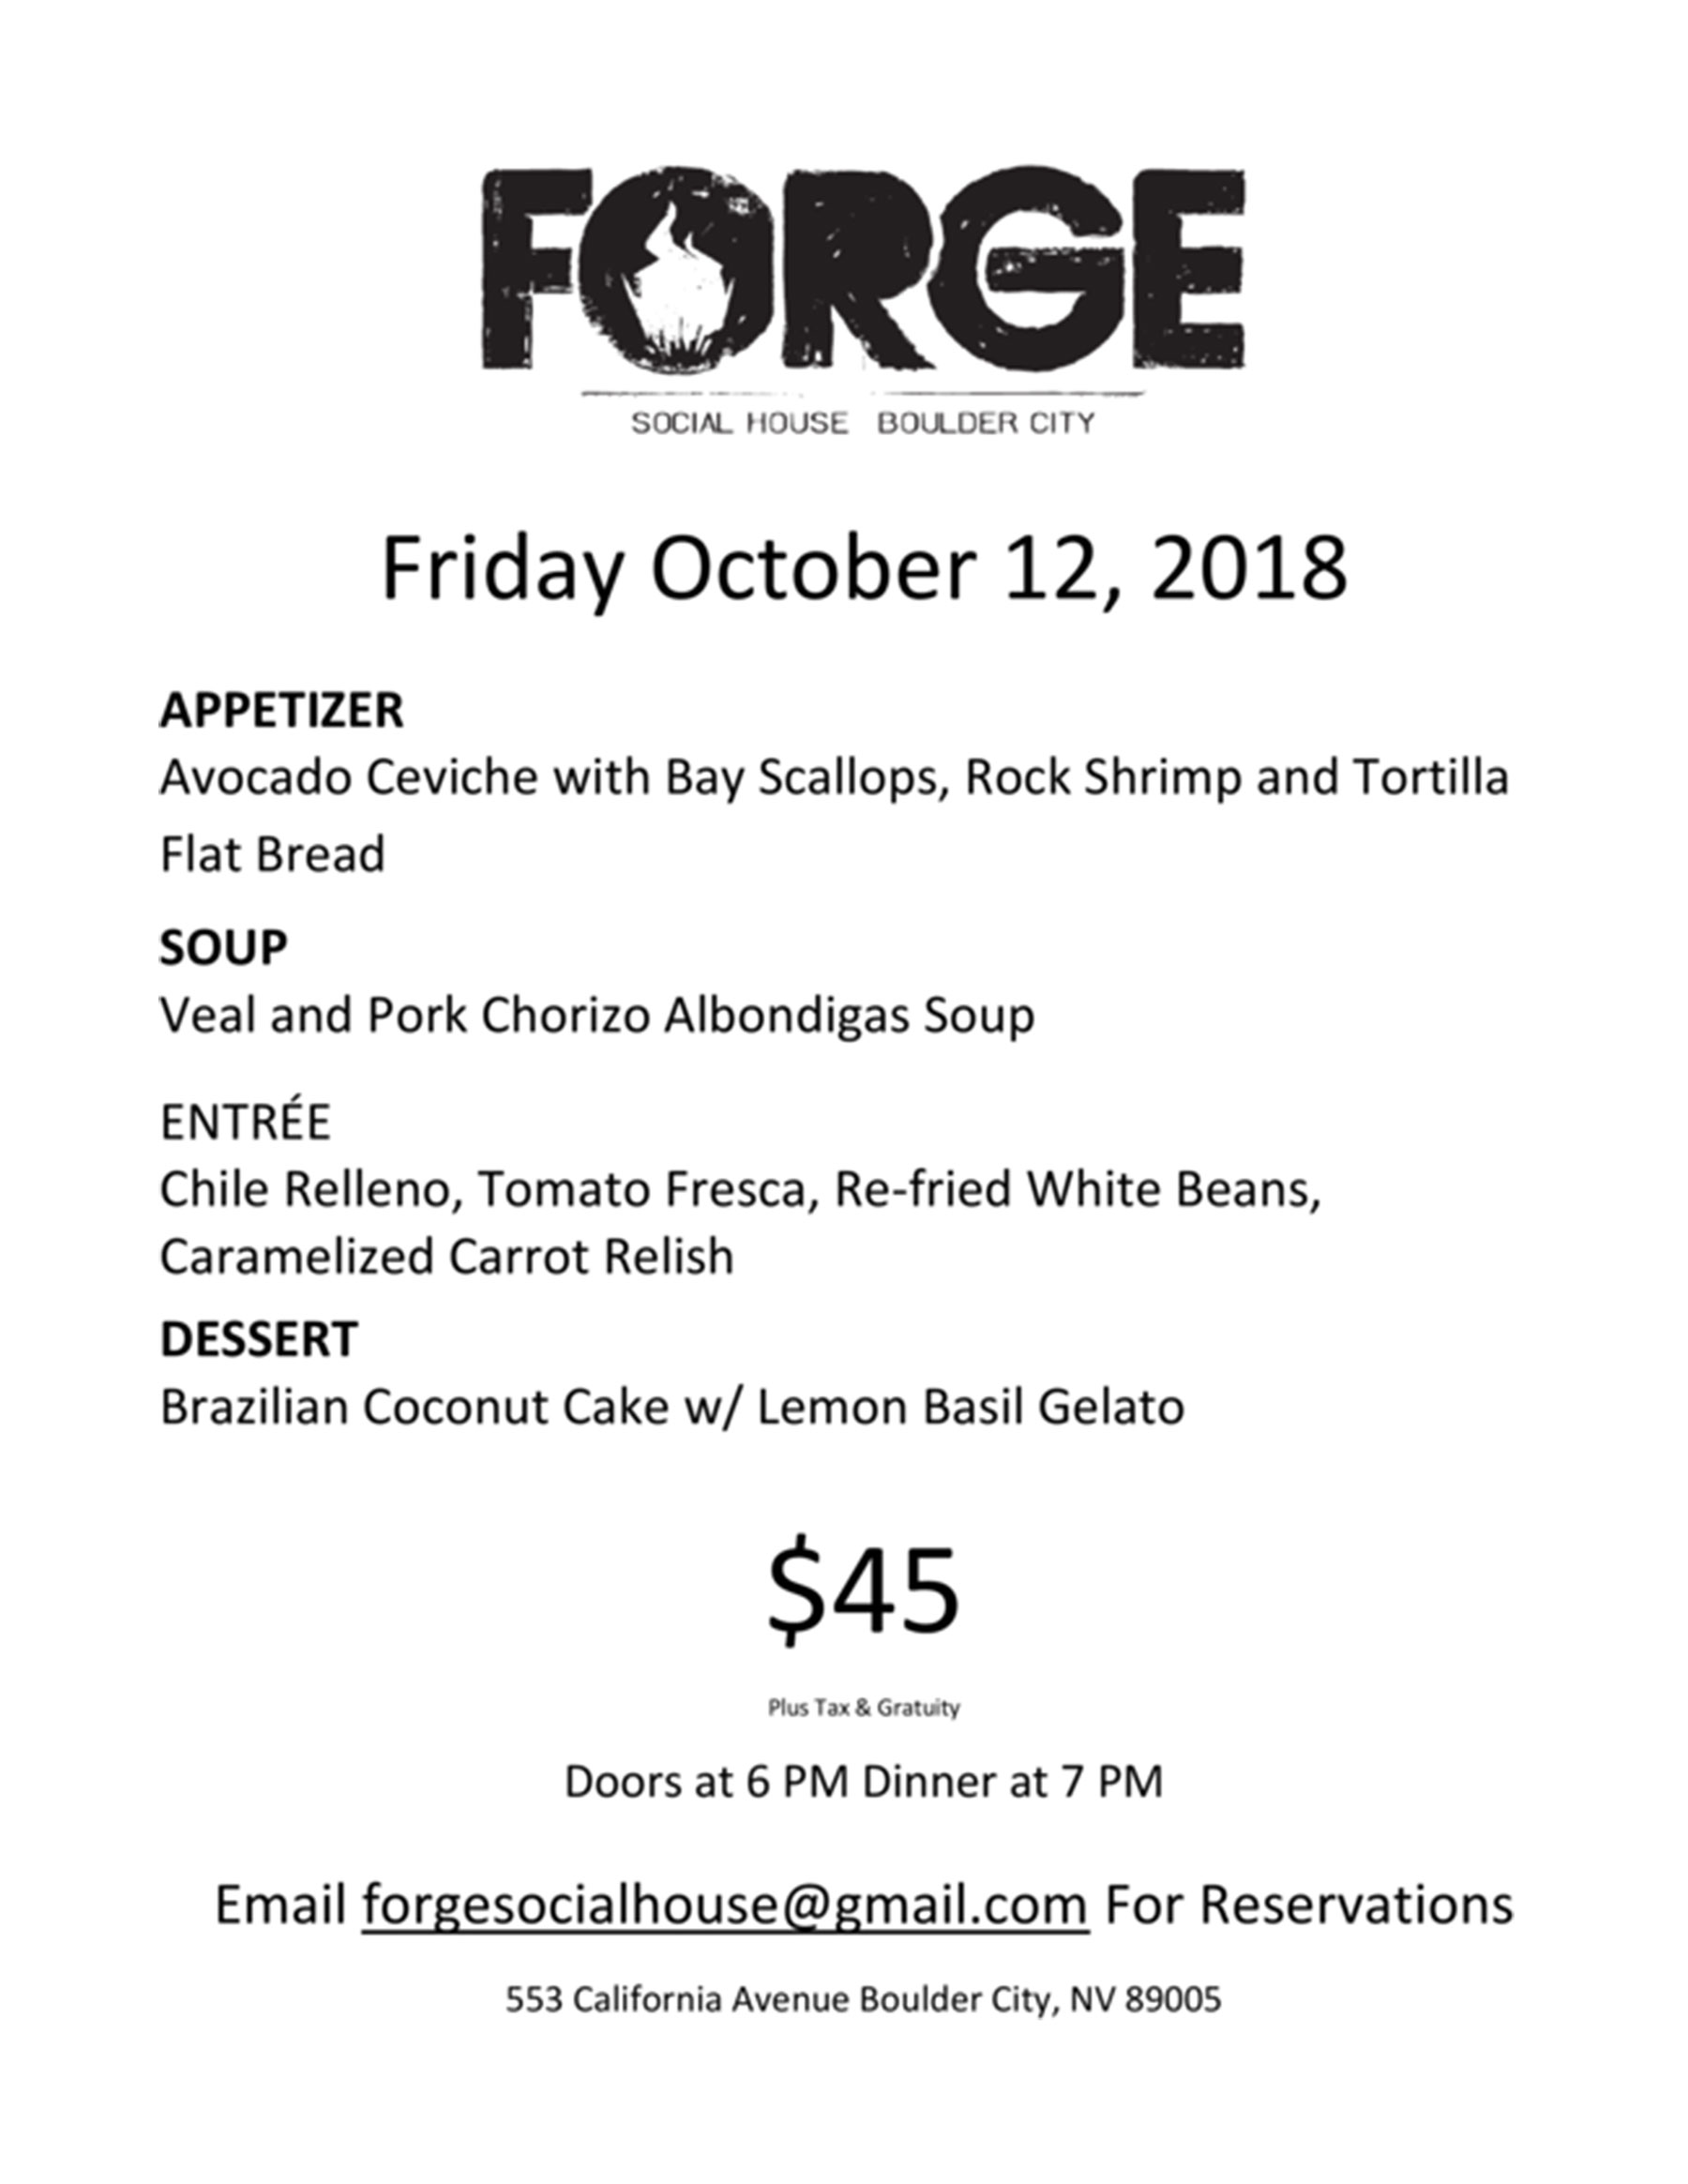 Forge Dinner October 2018 Boulder City, NV